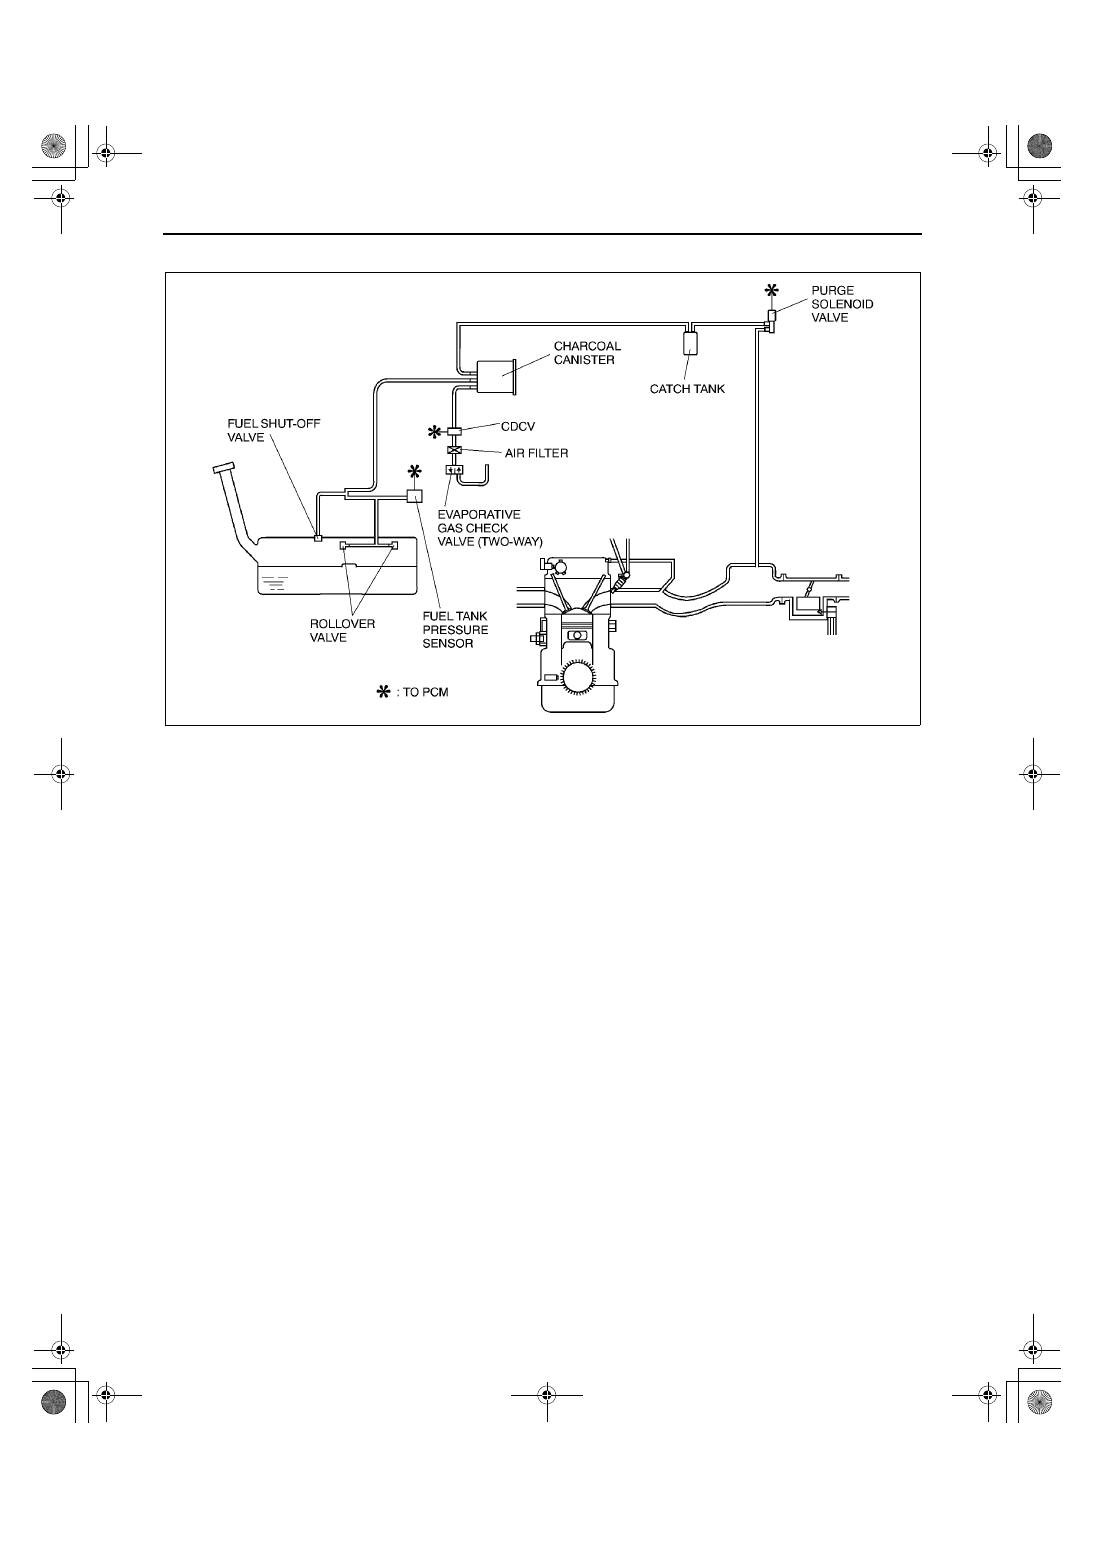 Mazda Protege Gas Tank Diagram Trusted Wiring Diagrams 2000 Mpv Engine Bottom 5 Manual Part 154 Mustang Fuel Hose